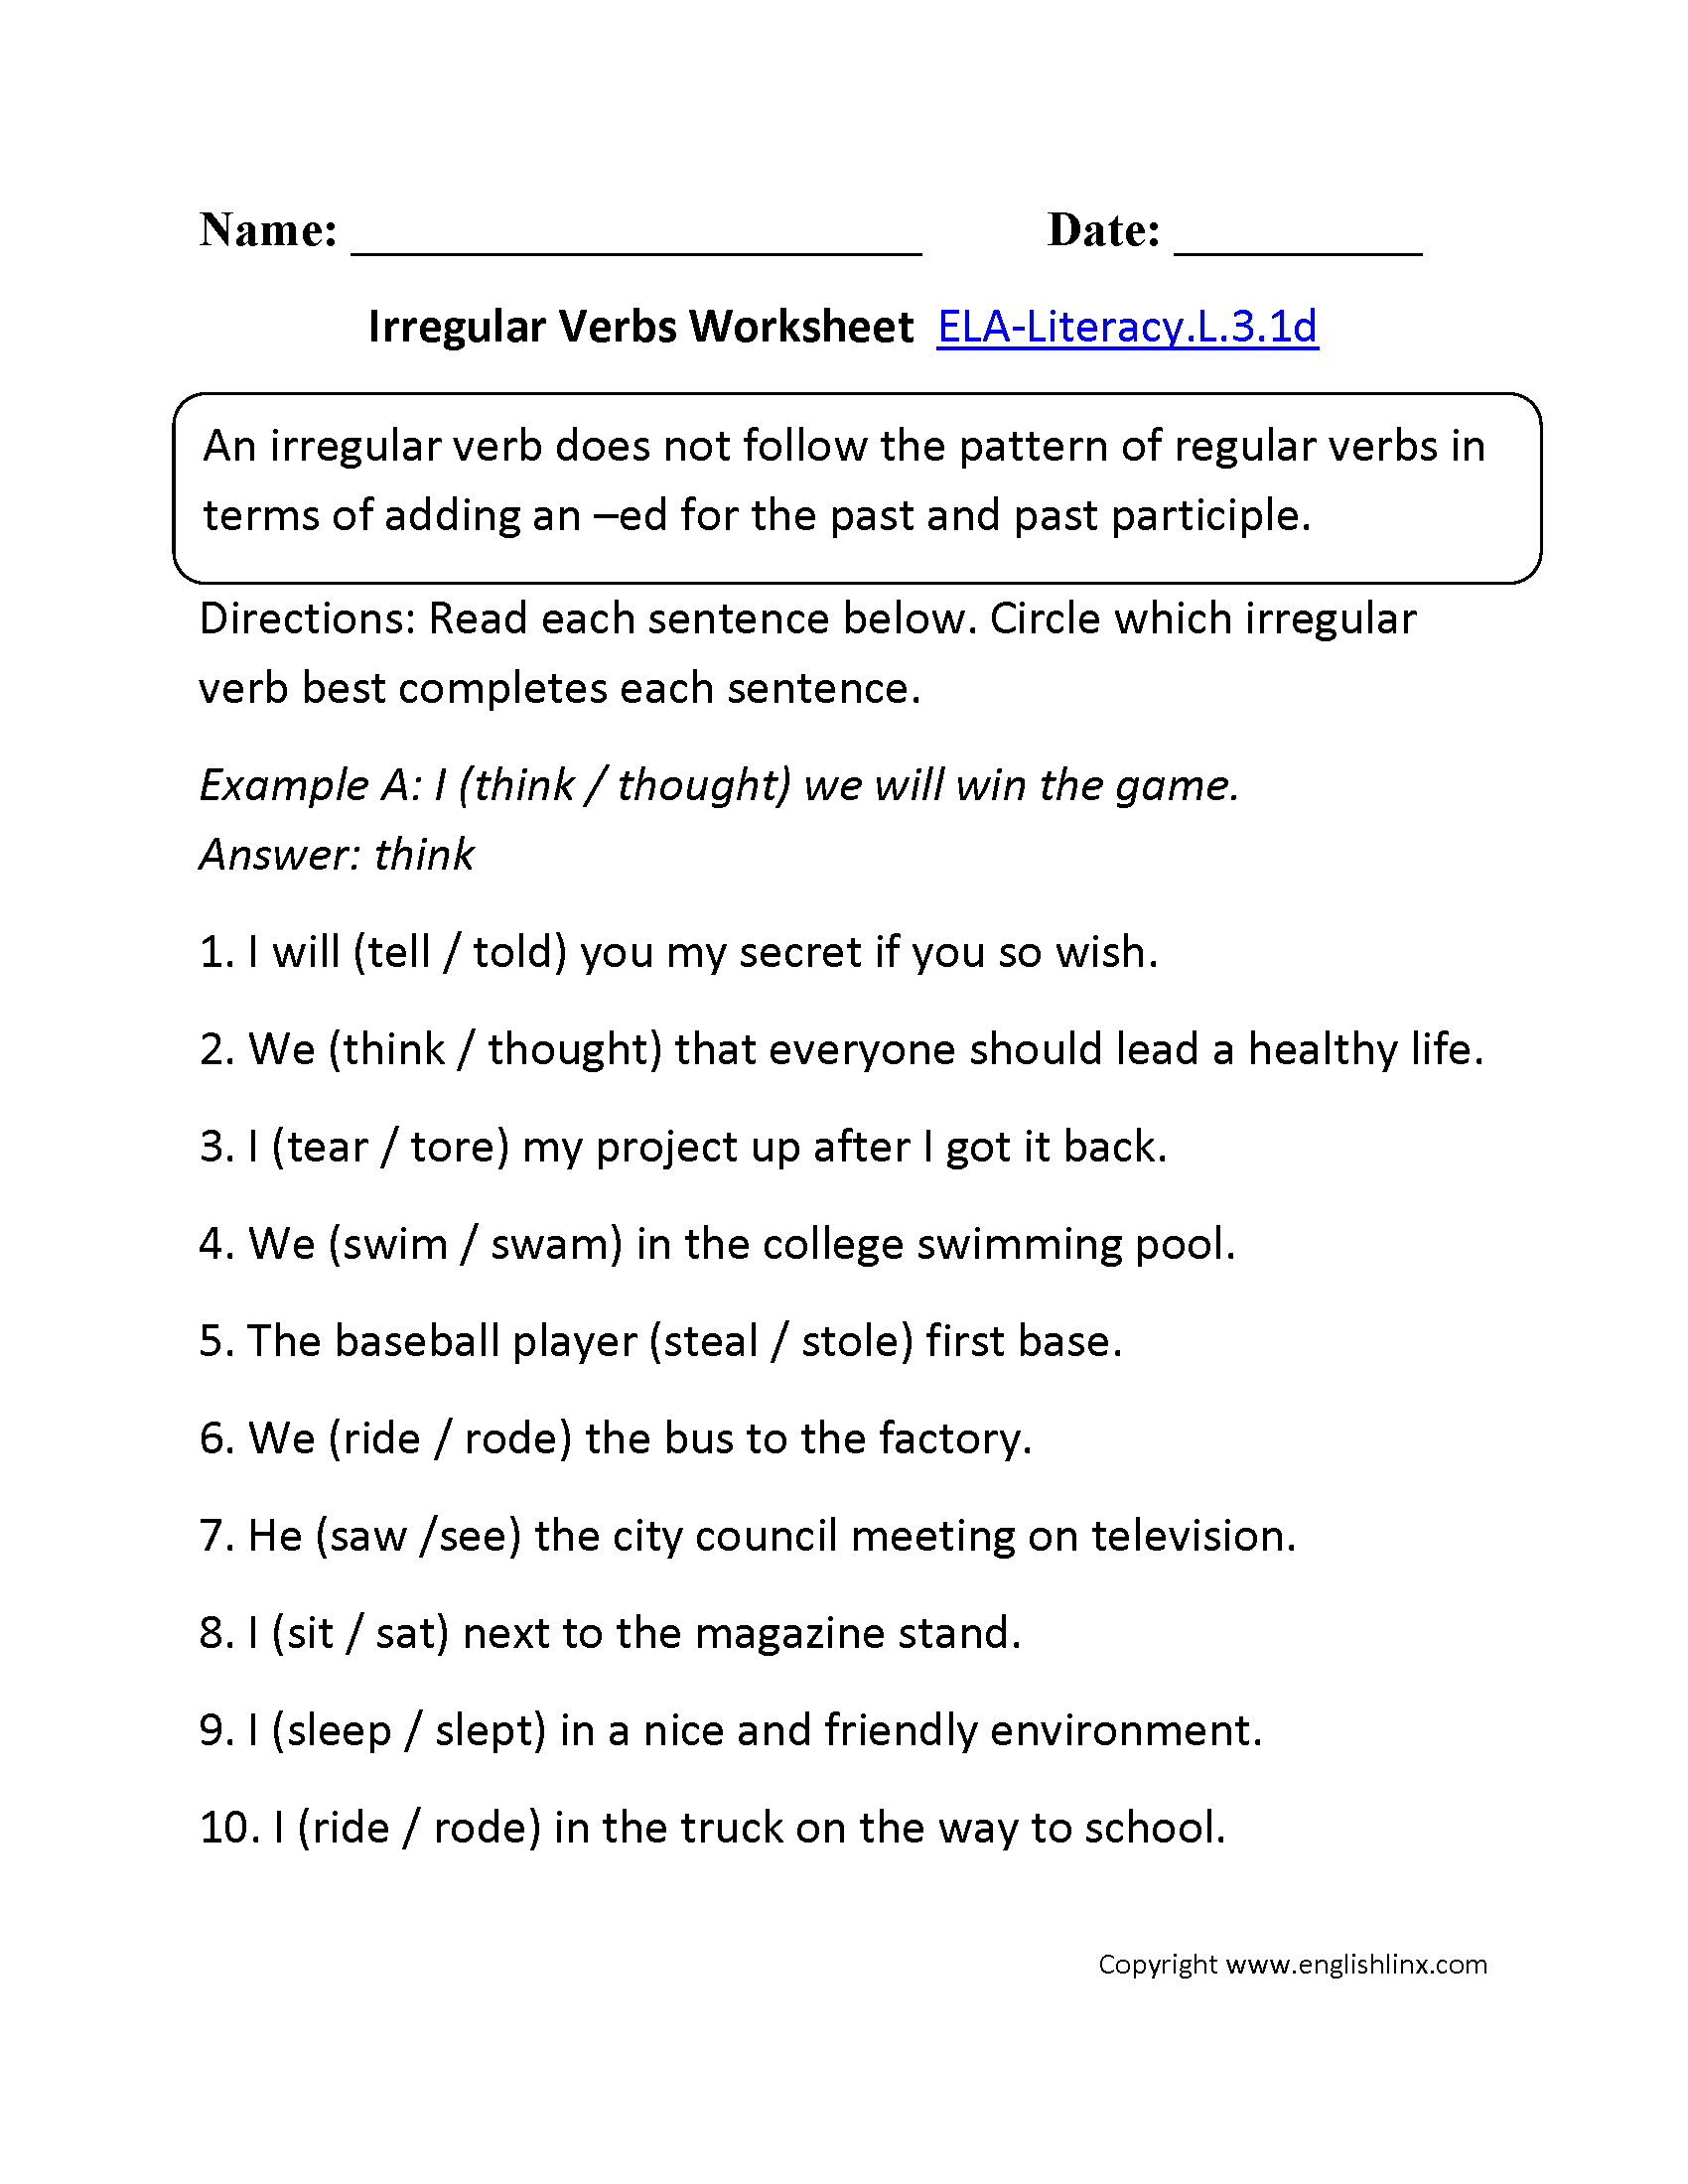 Worksheet Adjectives Worksheet For 3rd Grade 3rd grade common core language worksheets irregular verbs worksheet 1 ela literacy l 3 1d worksheet